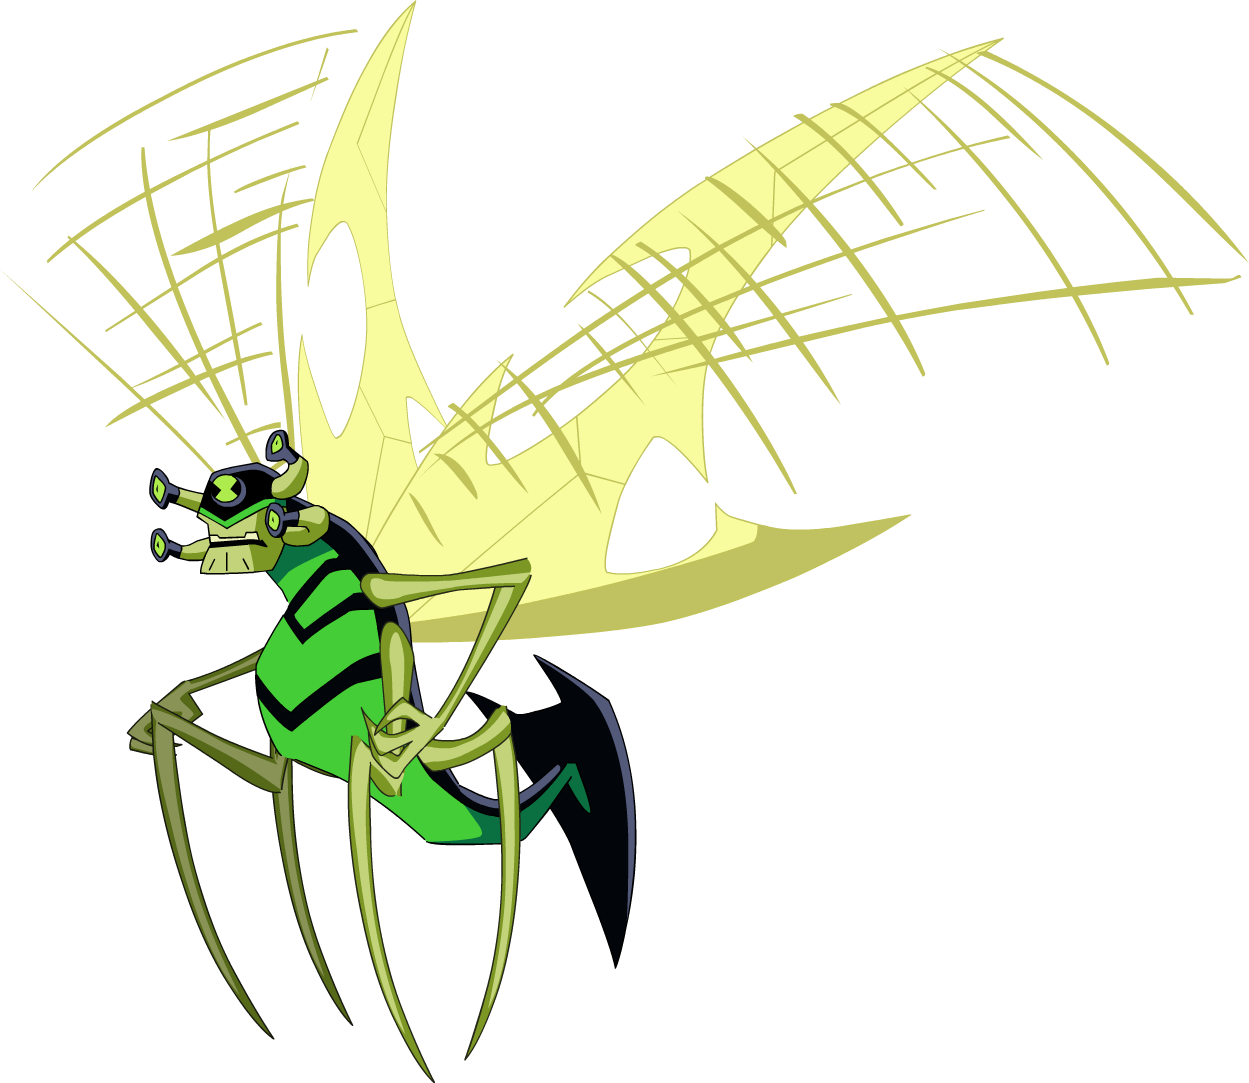 stinkfly original ben 10 wiki fandom powered by wikia